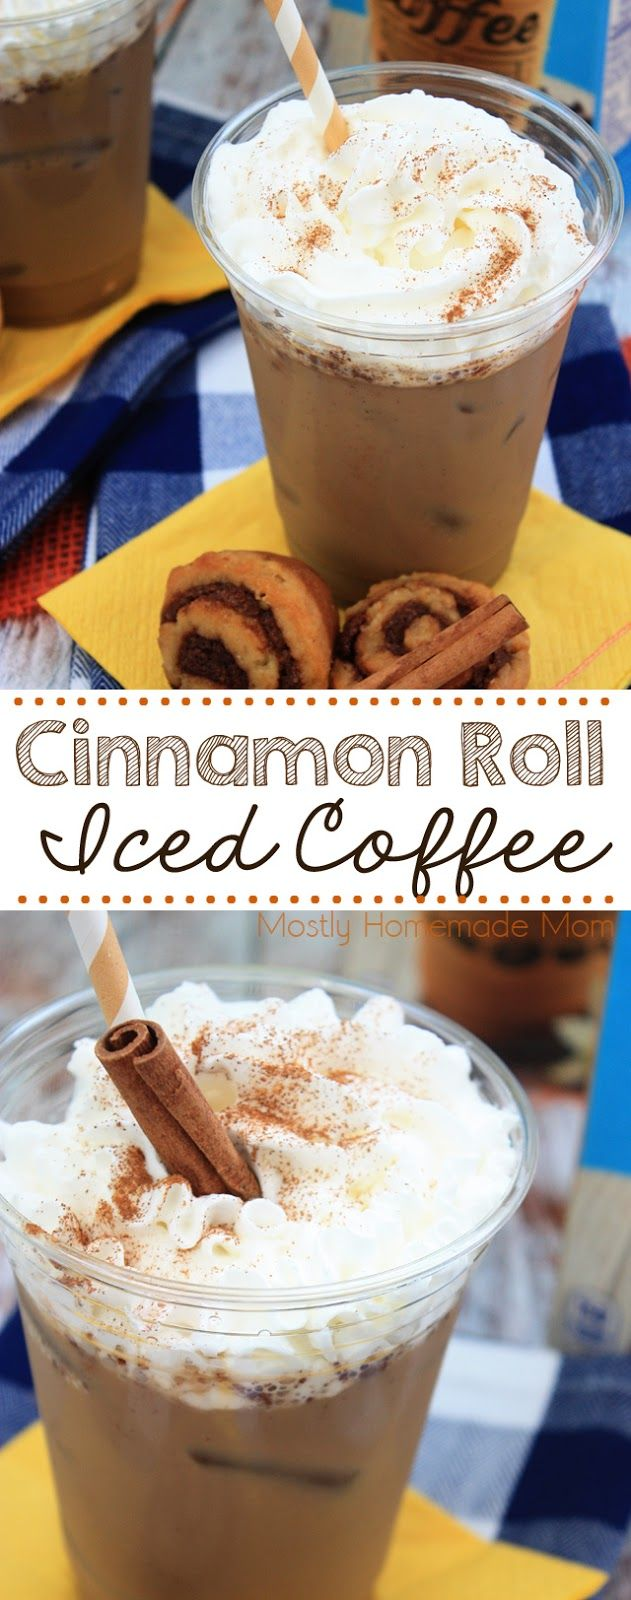 Cinnamon Roll Iced Coffee - With cinnamon and maple extract, this is one of my favorite, EASY iced coffee recipes! @InDelight #IDelight #ad